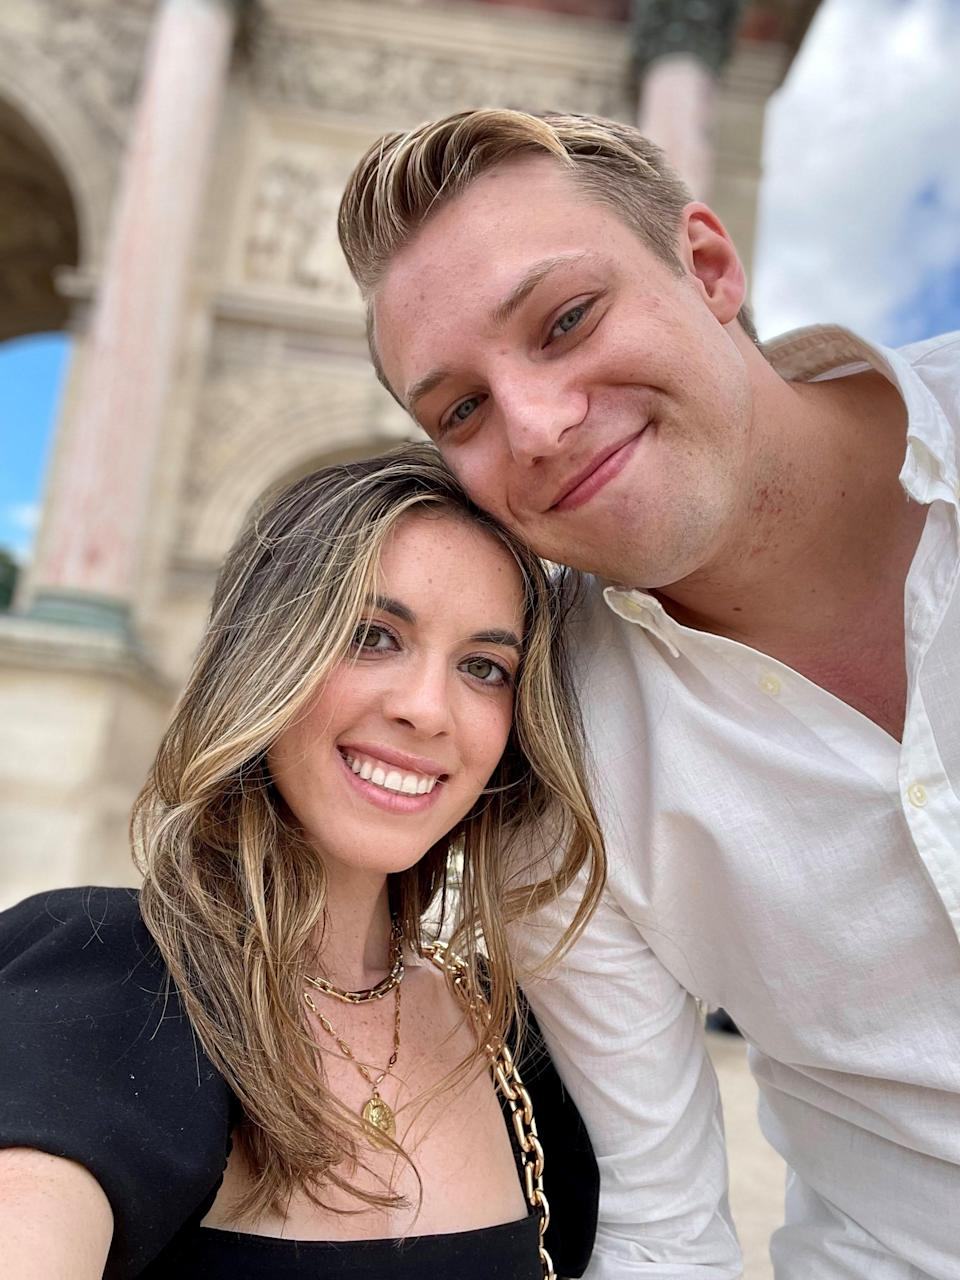 Aly Berger and Ryan Jacobsen moved from San Francisco to New York aided by their ability to work remotely.